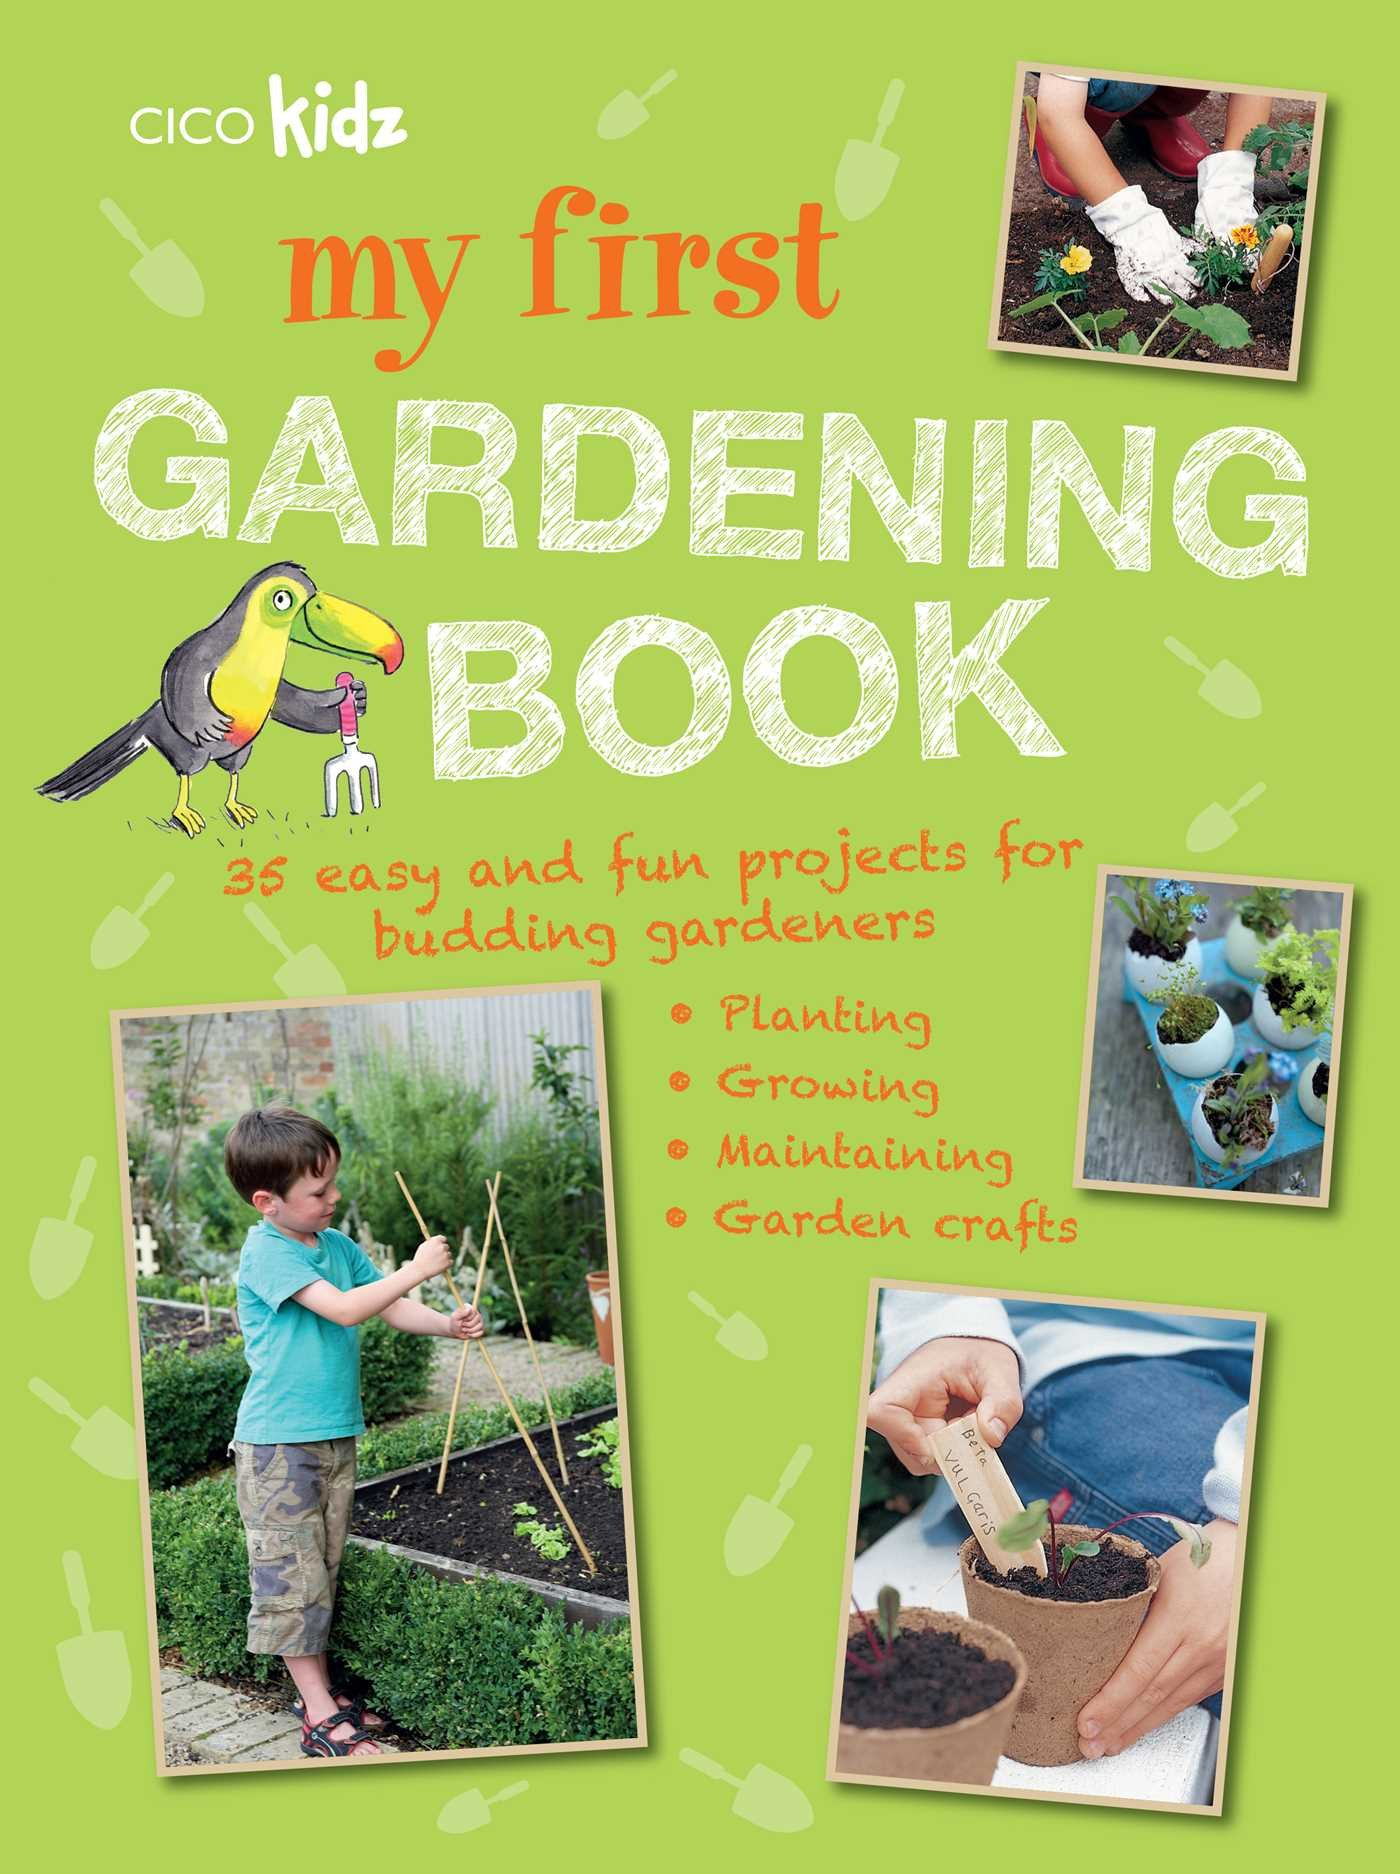 My First Gardening Book: 35 easy and fun projects for budding gardeners: planting, growing, maintaining, garden crafts PDF